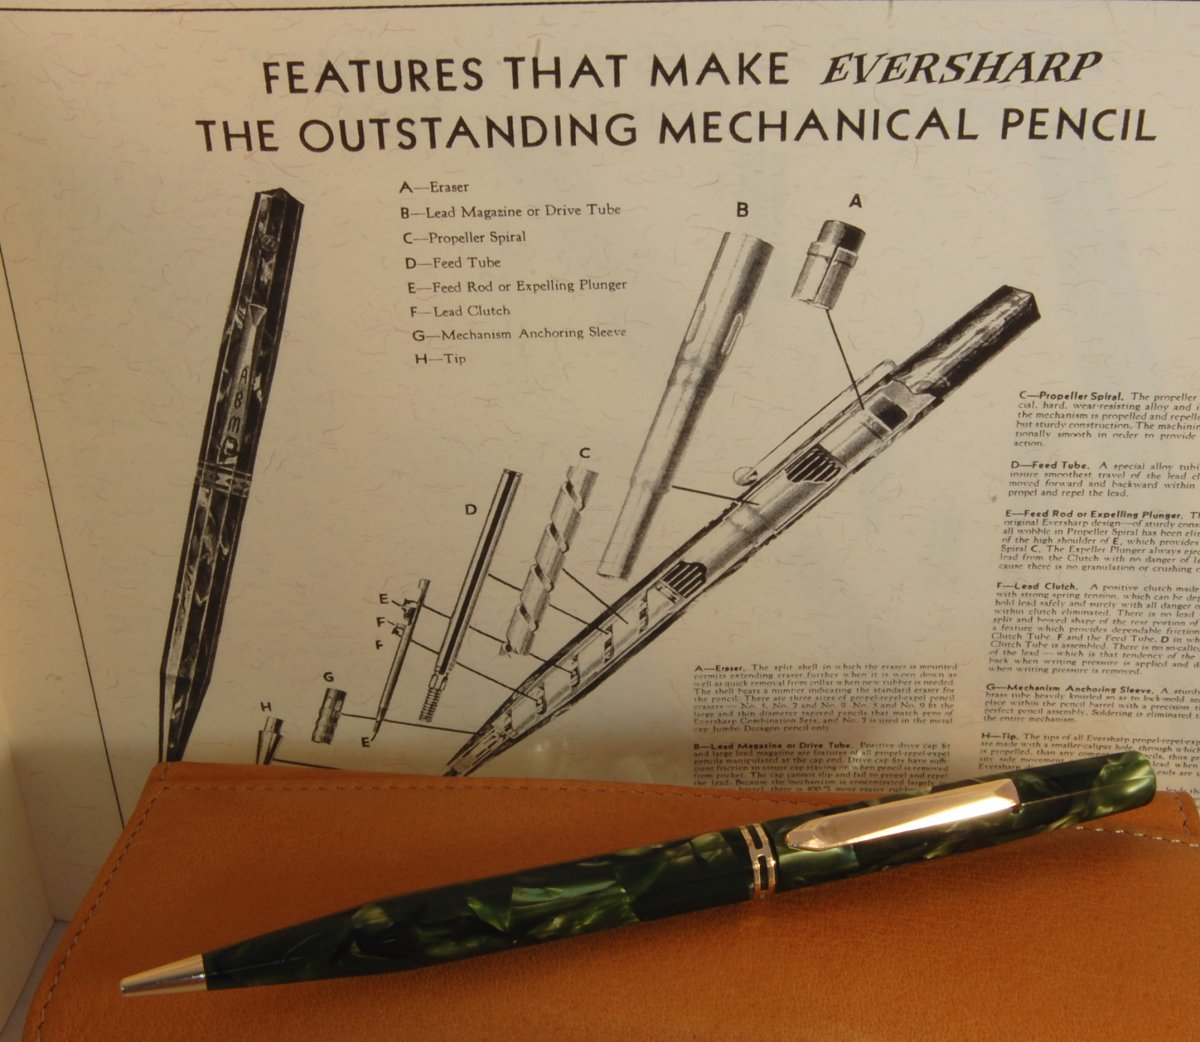 eversharp_236_1.jpg